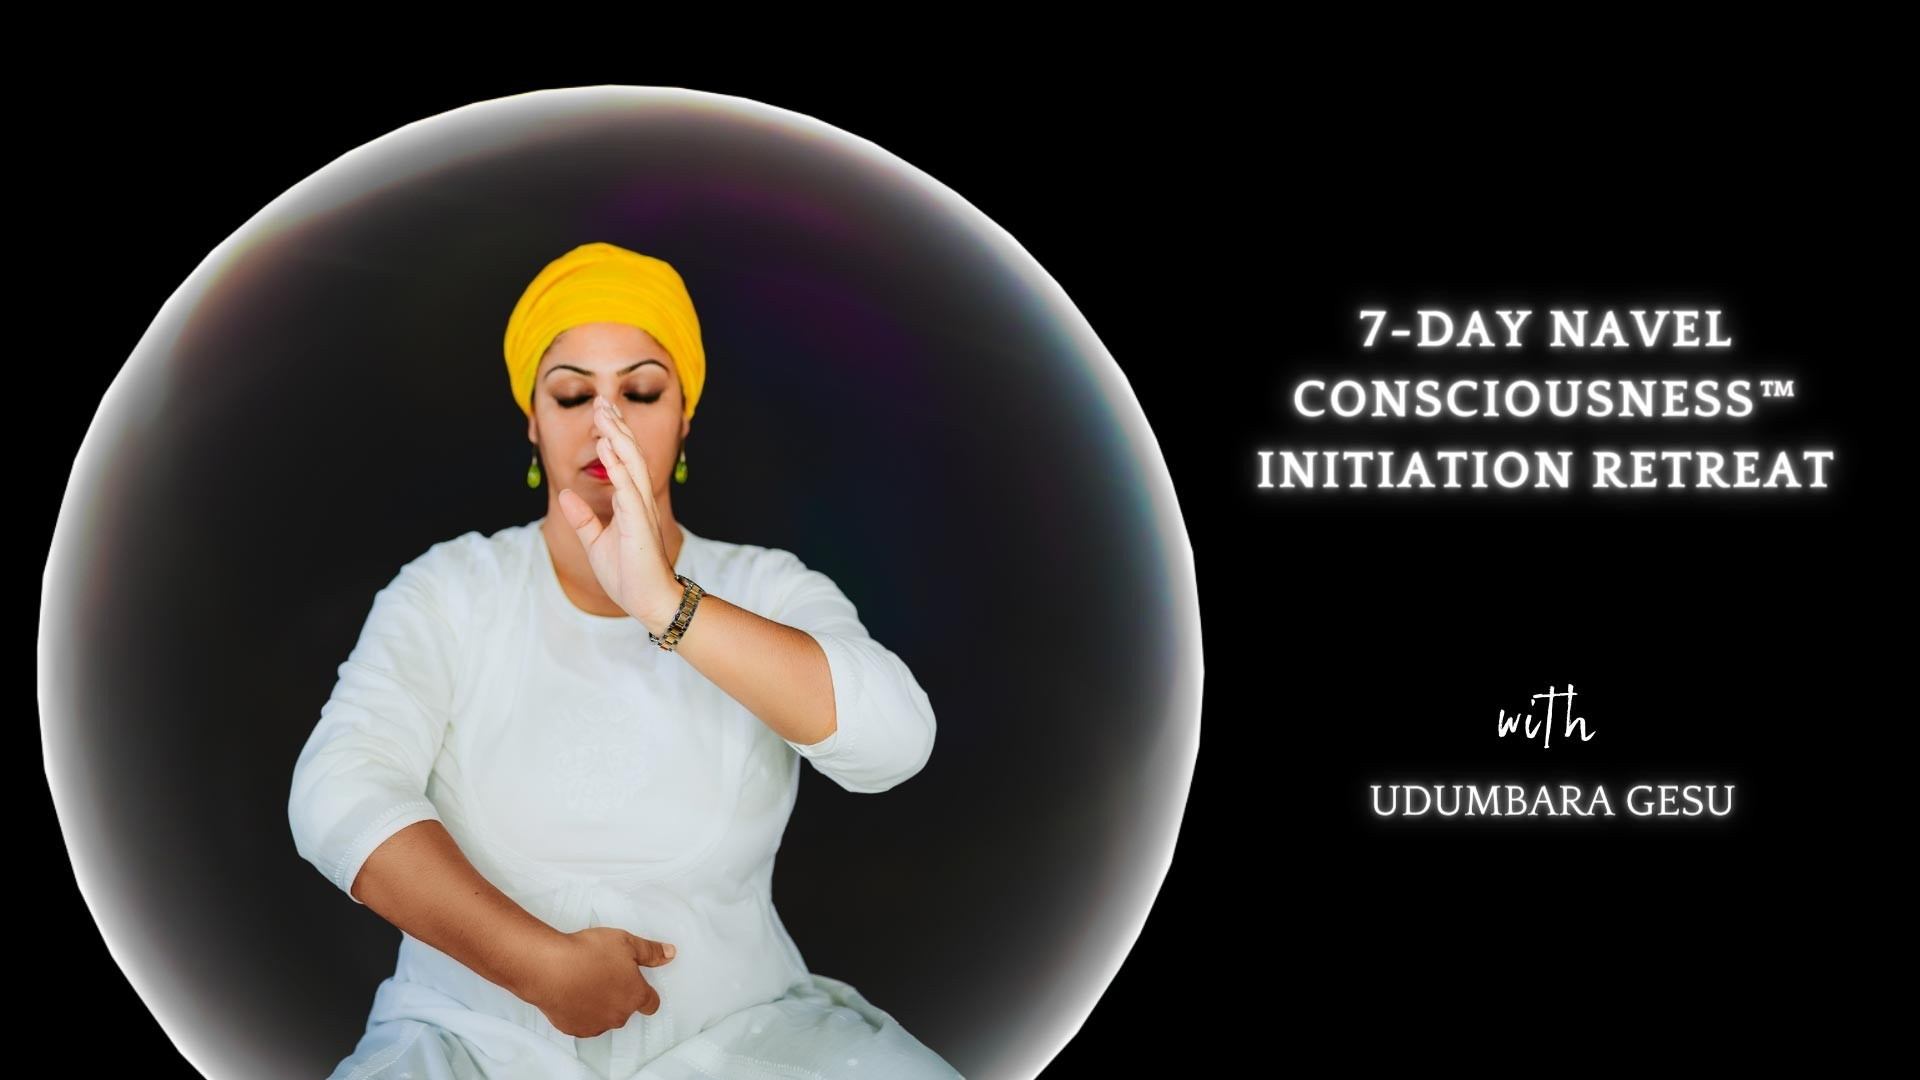 7 day Navel Consciousness initiation retreat